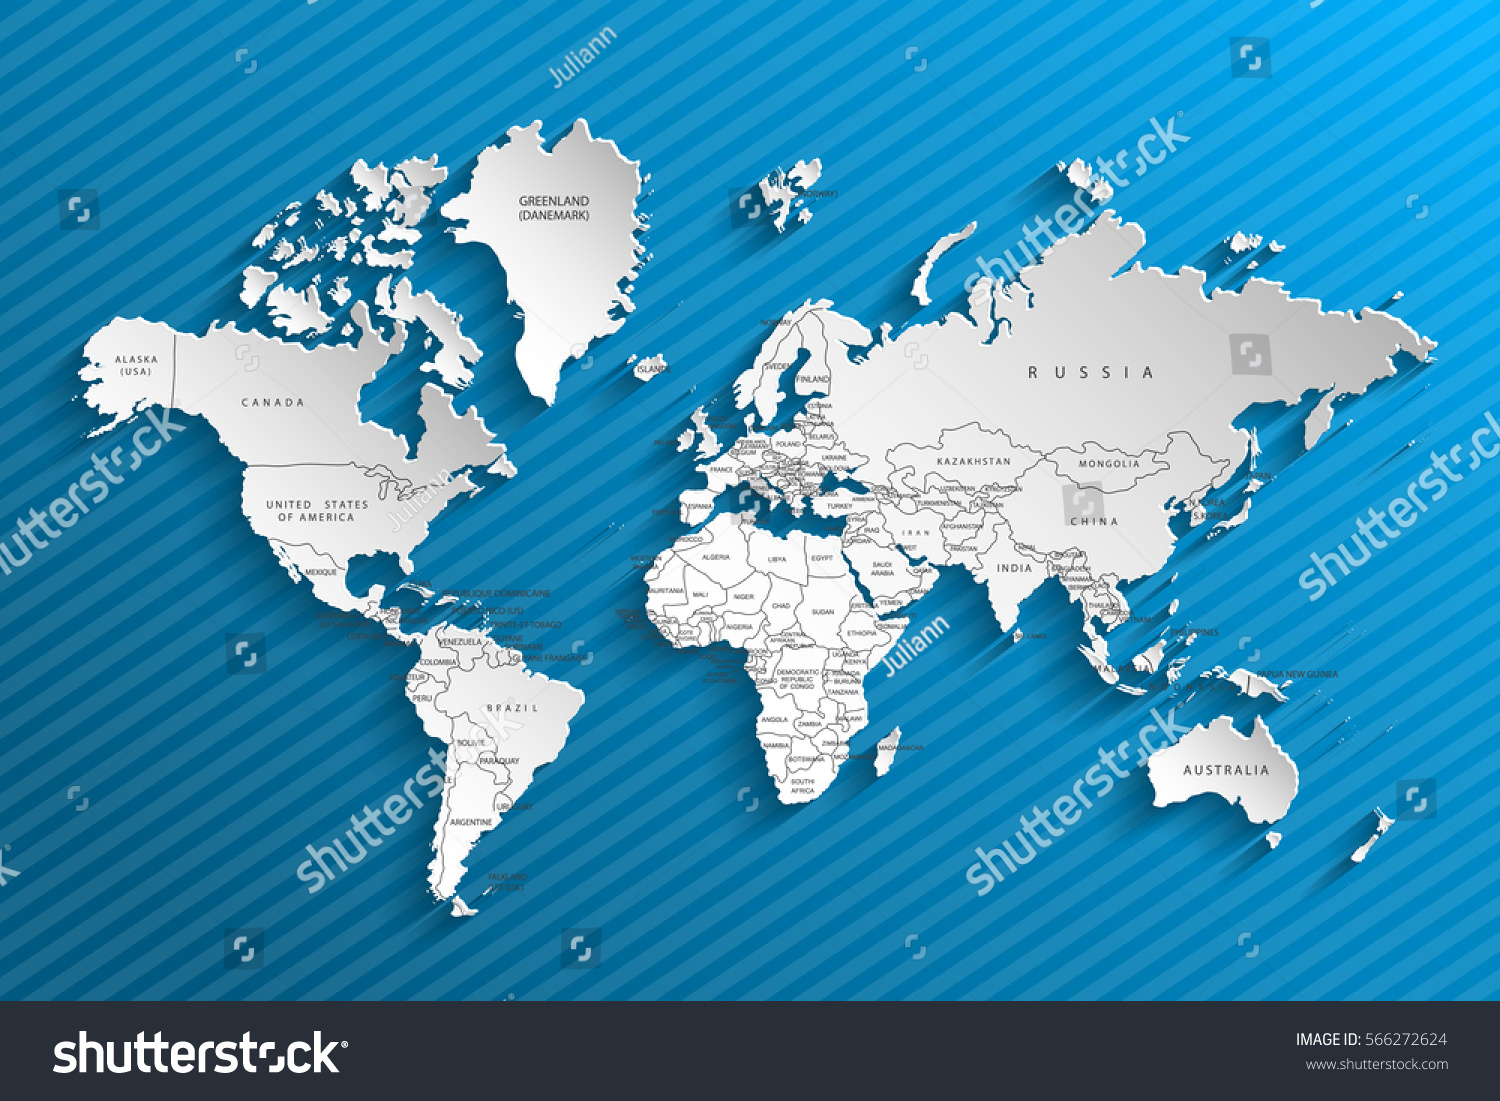 Political map world gray world mapcountries stock vector 566272624 political map of the world gray world map countries vector illustration gumiabroncs Images